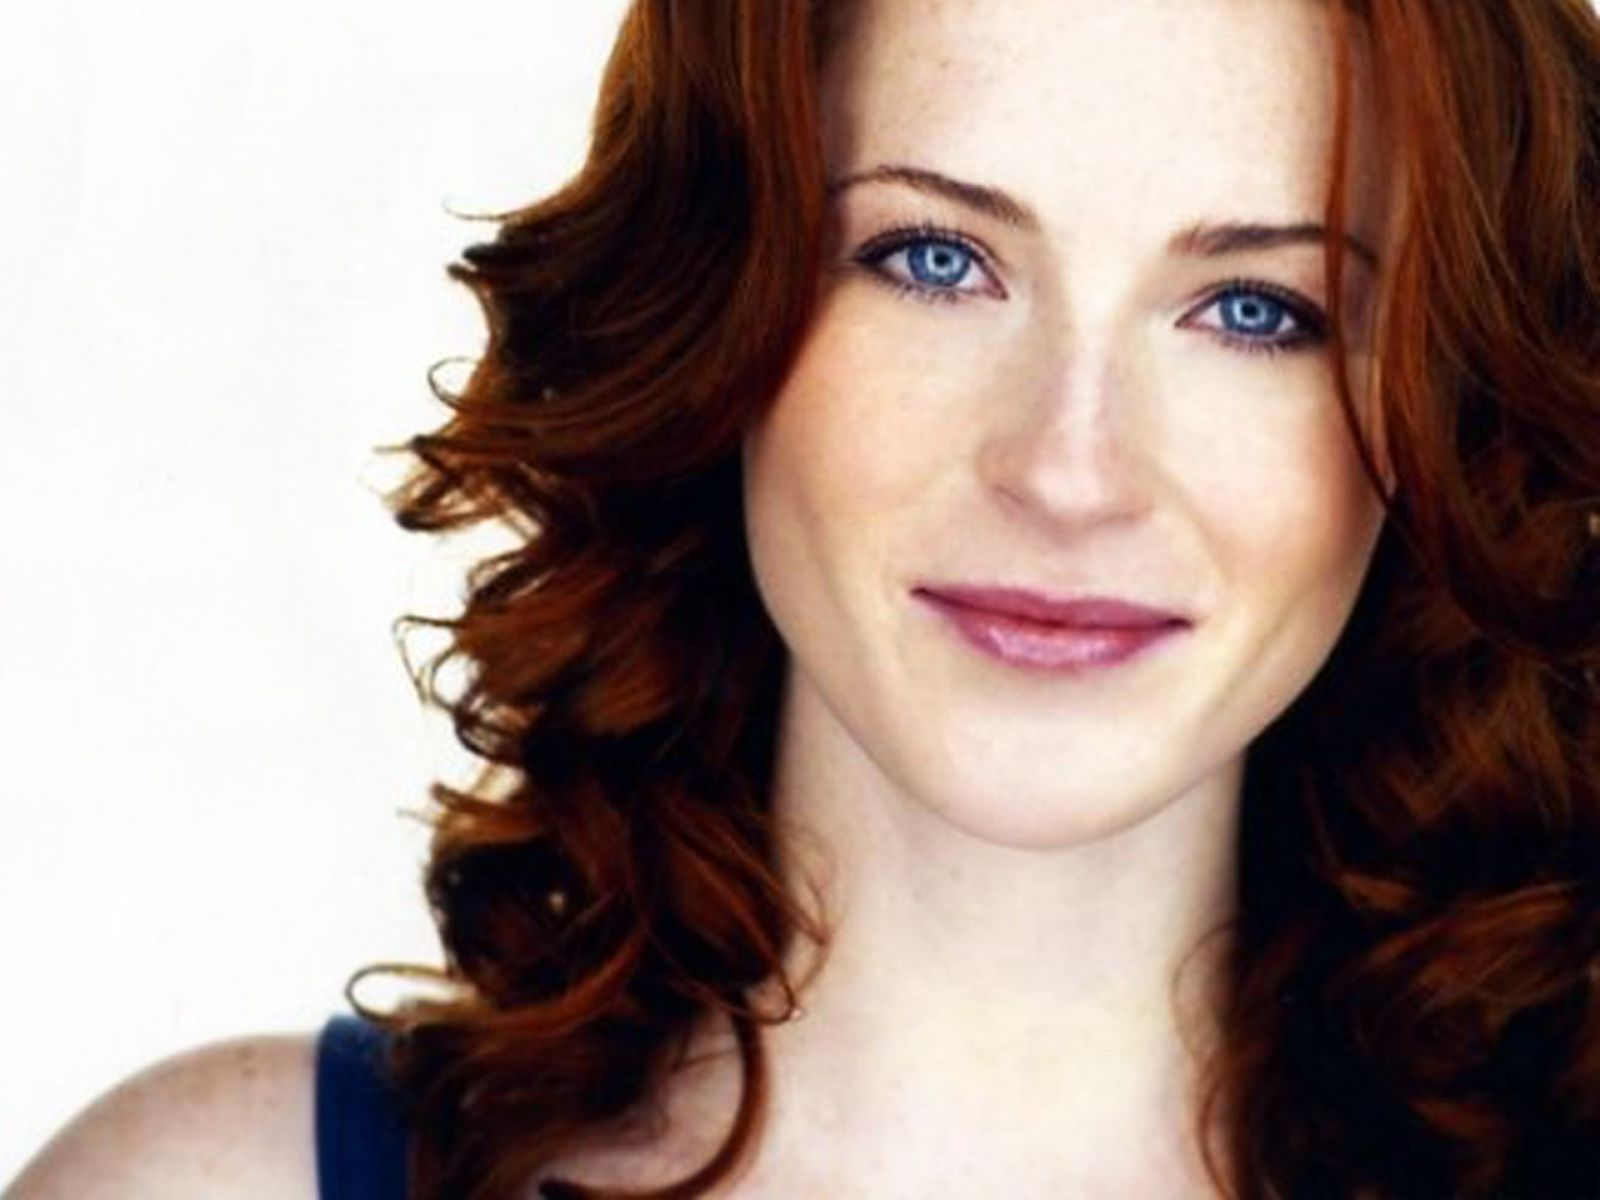 Bridget Regan Mr Skin bridget regan in 2019 | bridget regan, red hair fade, red hair